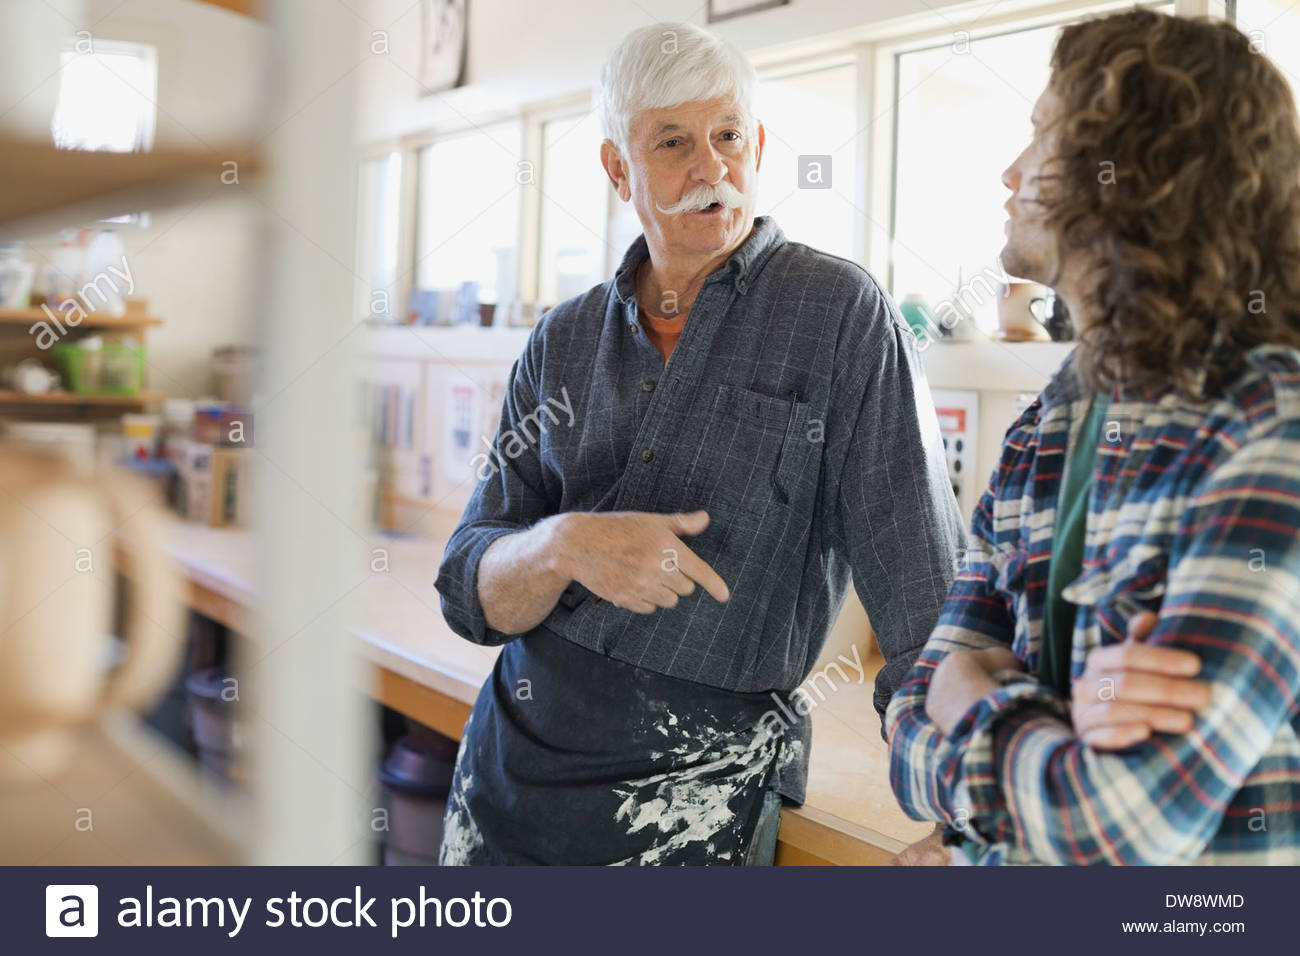 Pottery members talking in studio - Stock Image